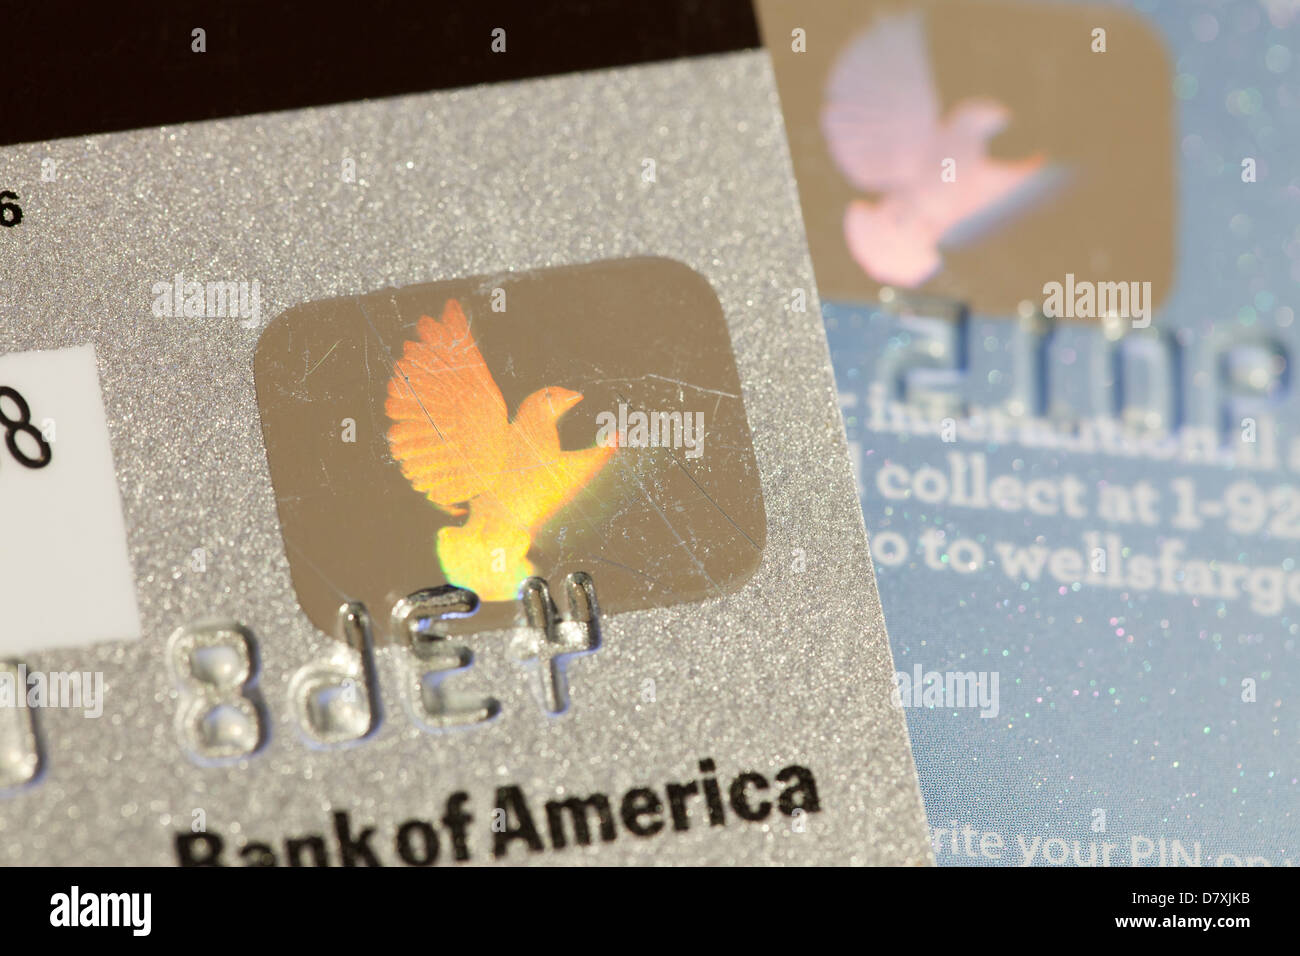 Credit card security hologram - Stock Image